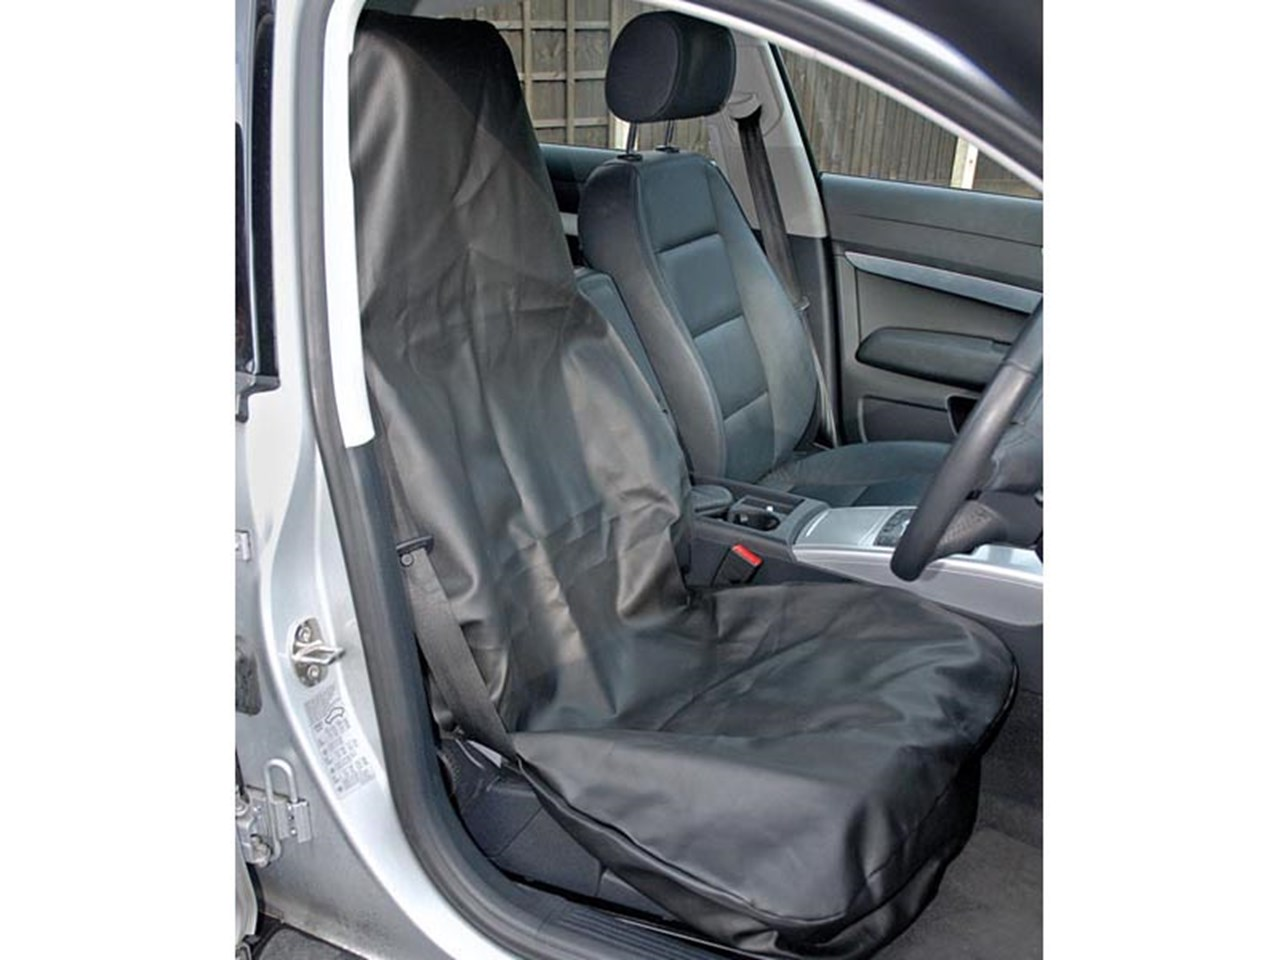 Terrific Draper Sc 03 Expert Side Airbag Compatible Heavy Duty Front Seat Cover Dailytribune Chair Design For Home Dailytribuneorg